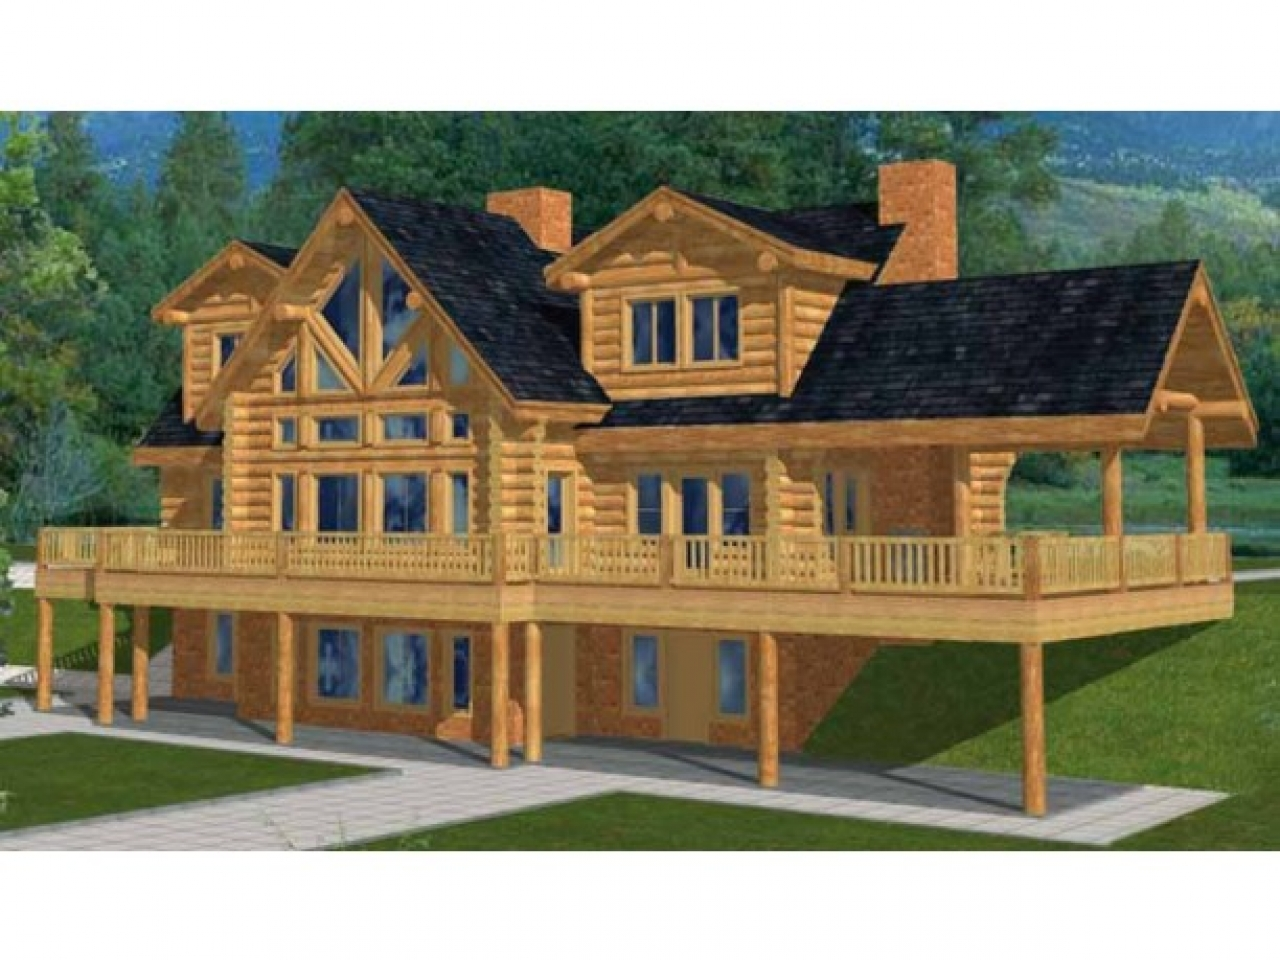 Two story log cabin house plans inexpensive modular homes for Cabin house plans with photos